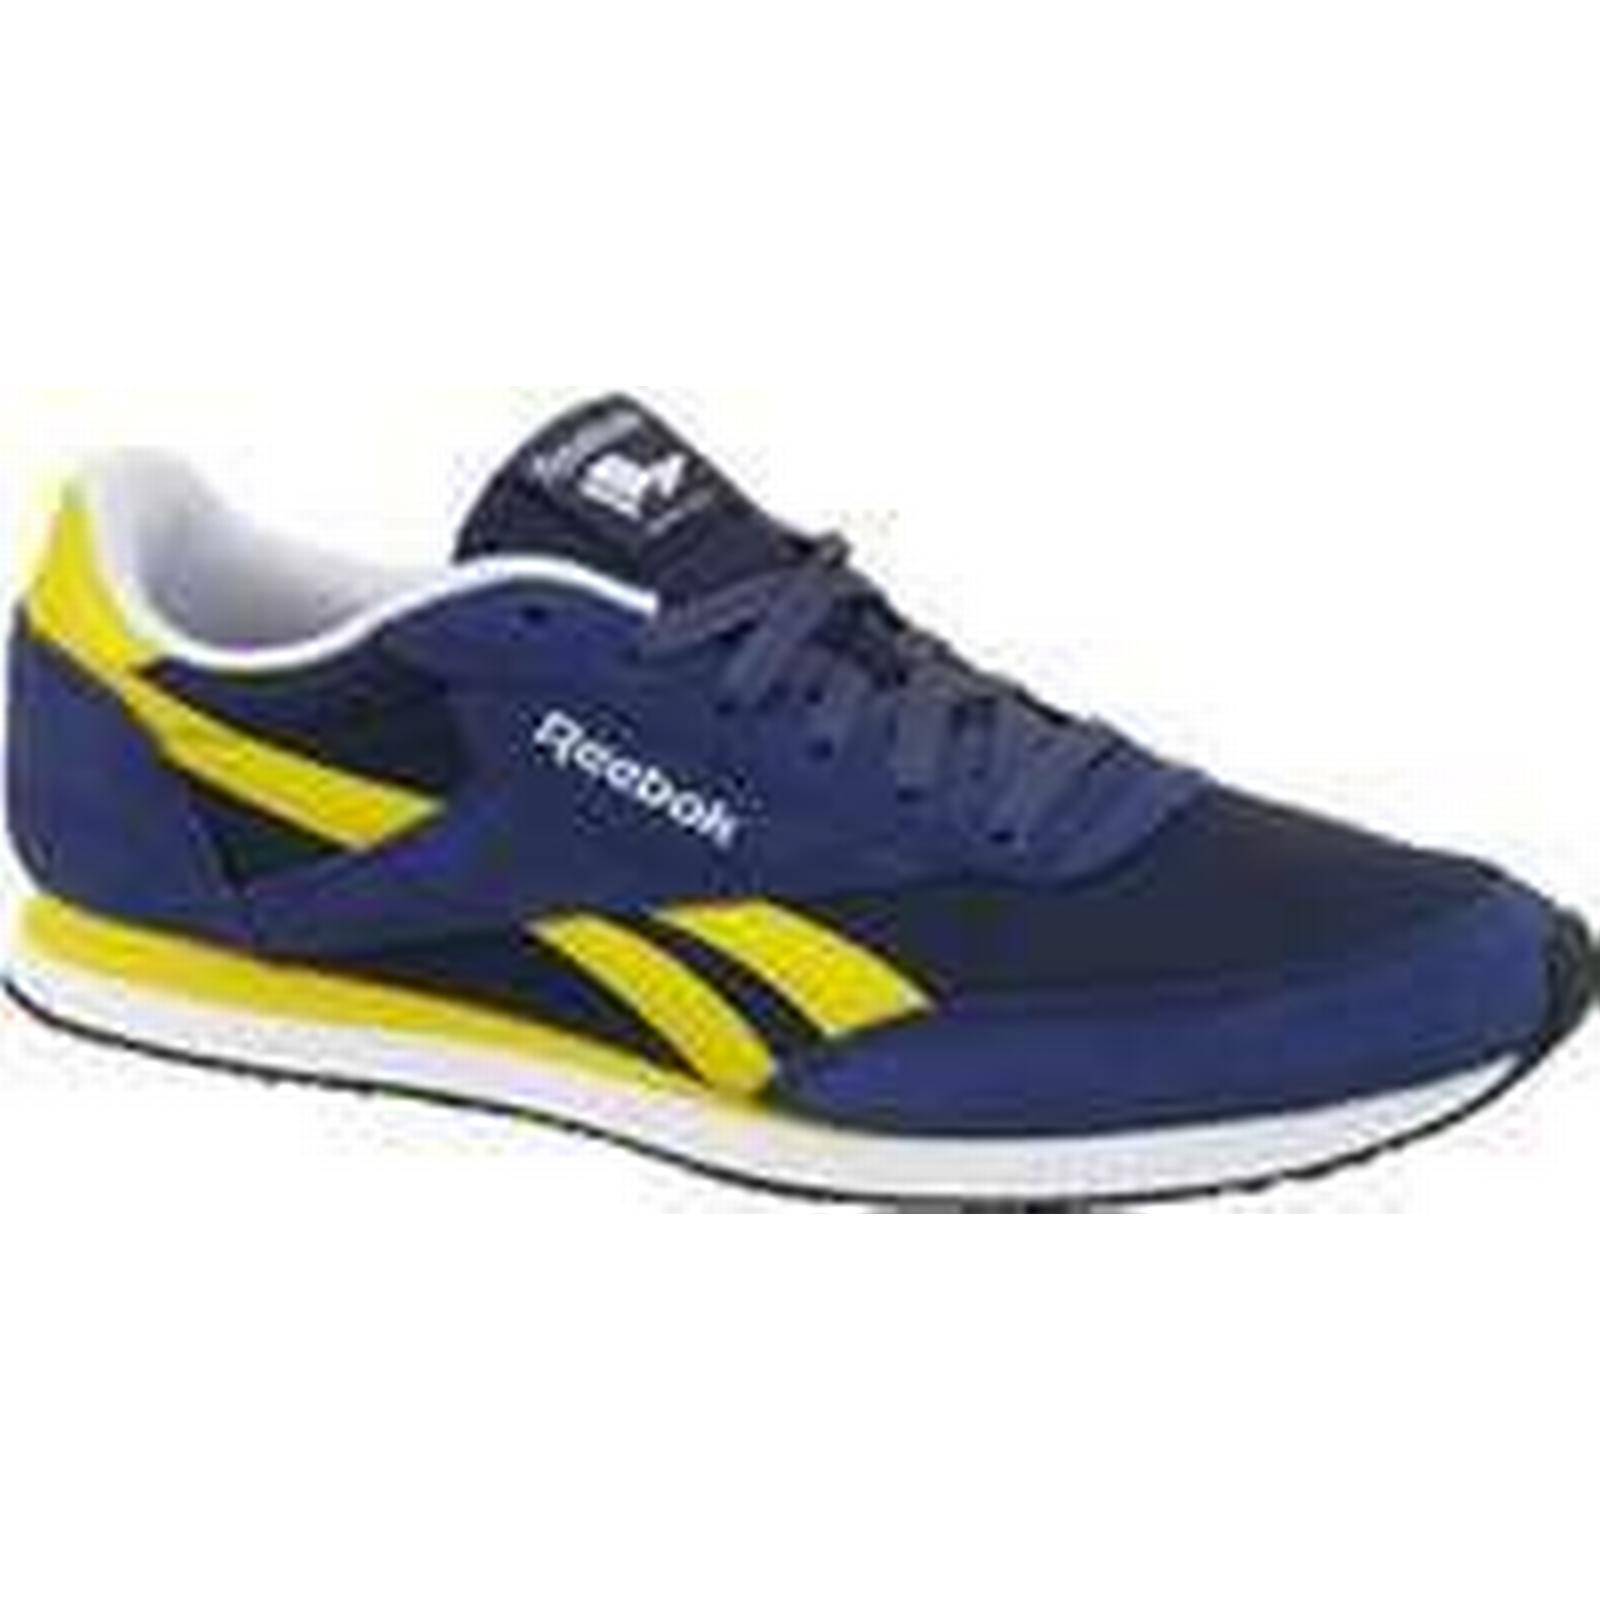 Spartoo.co.uk Jogger Reebok Sport Royal CL Jogger Spartoo.co.uk 2 men's Shoes (Trainers) in Yellow 6285d5